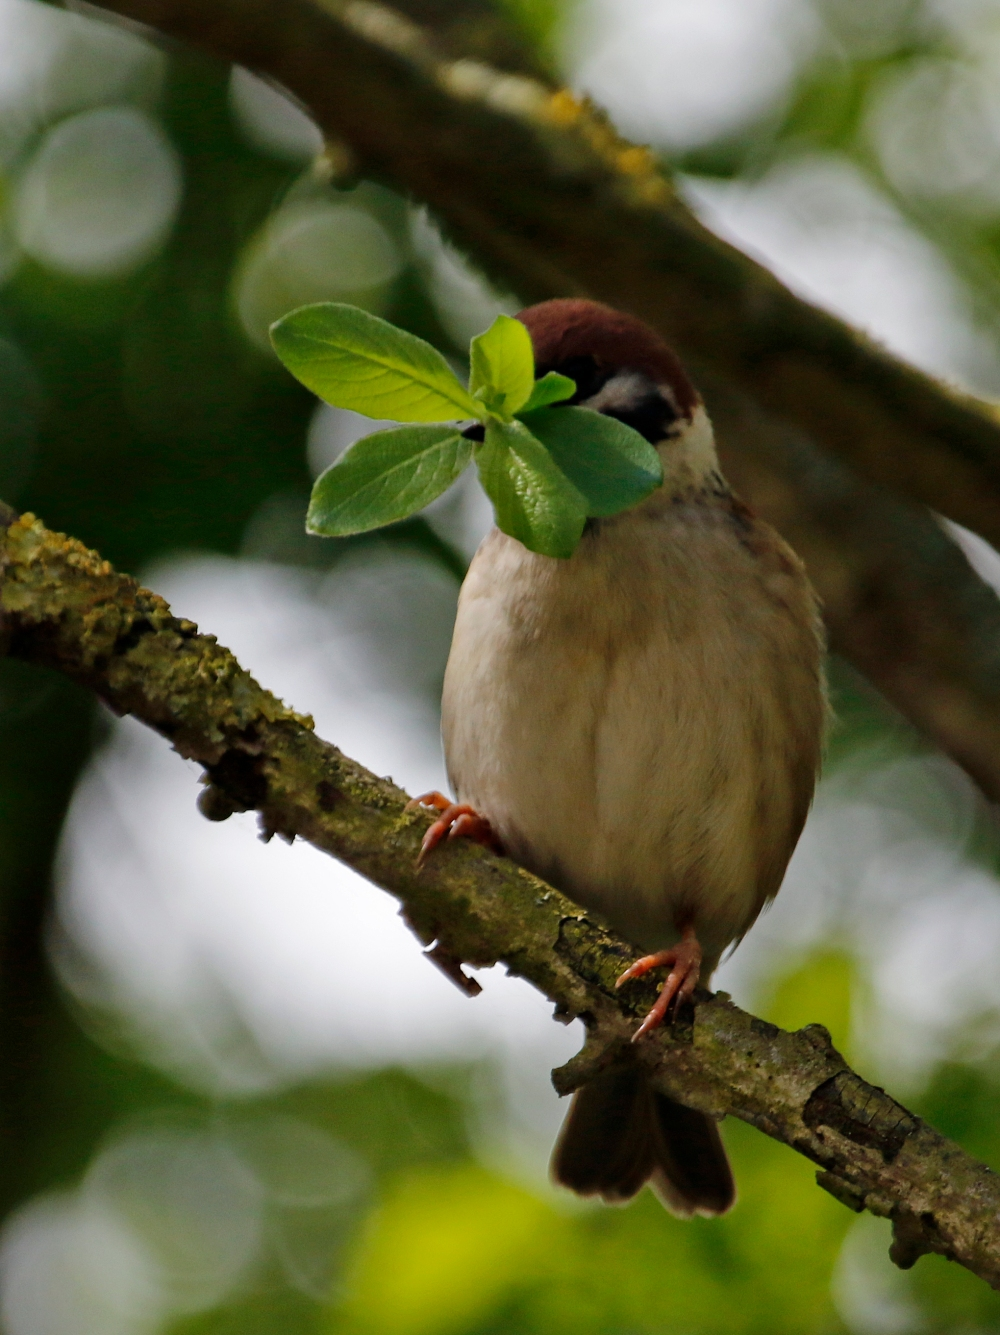 Tree sparrow collecting leaves